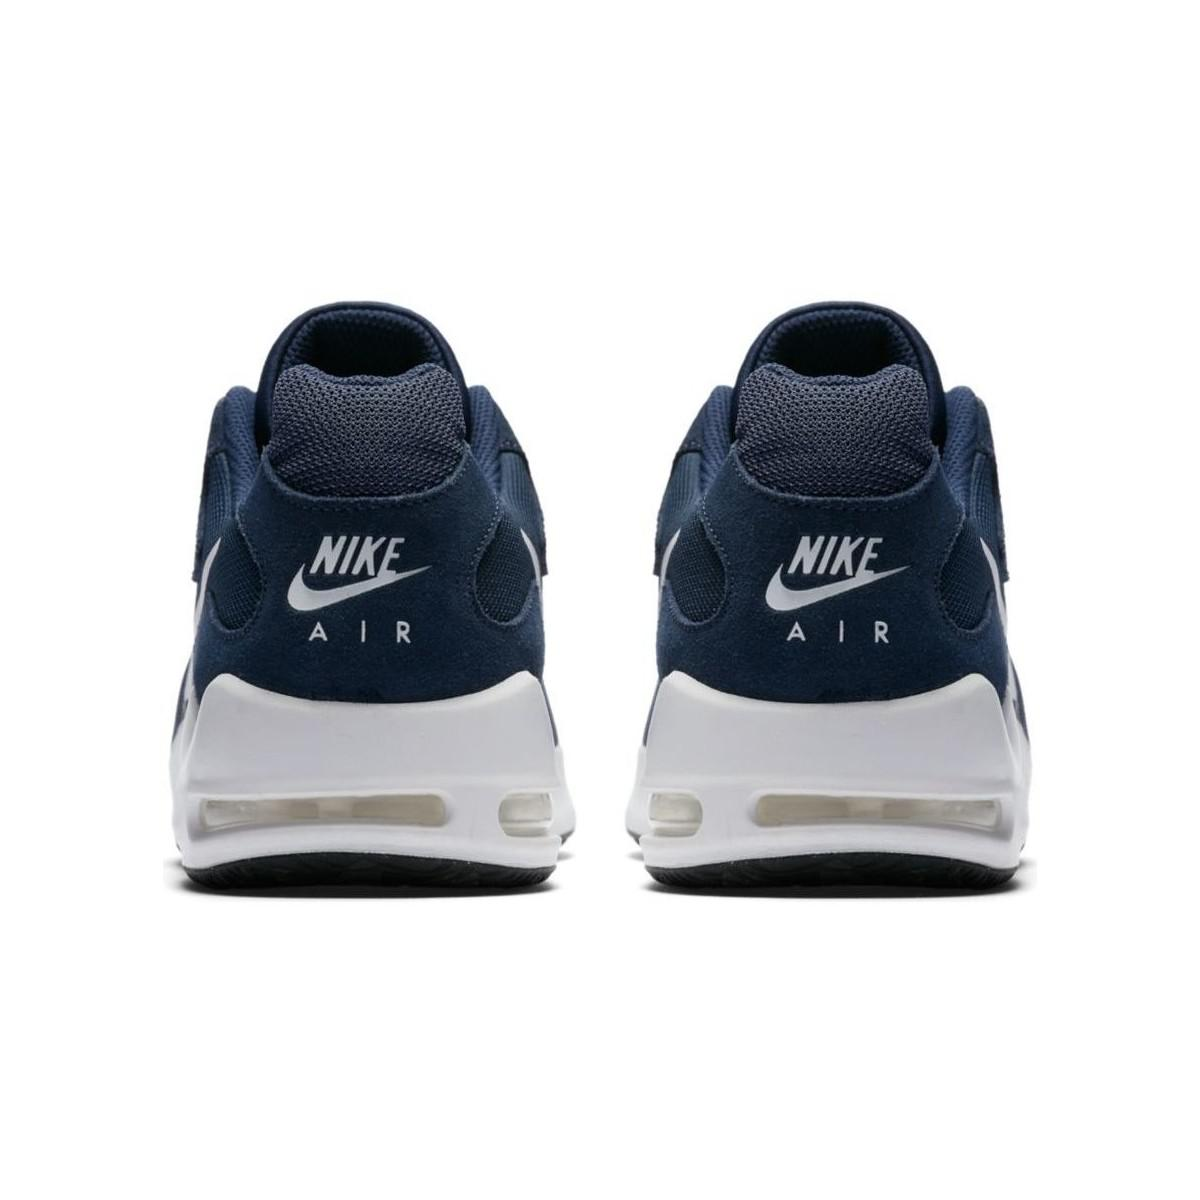 online retailer 459b8 f2275 Nike - Zapatilla Men s Air Max Guile Shoe Men s Shoes (trainers) In Blue  for. View fullscreen